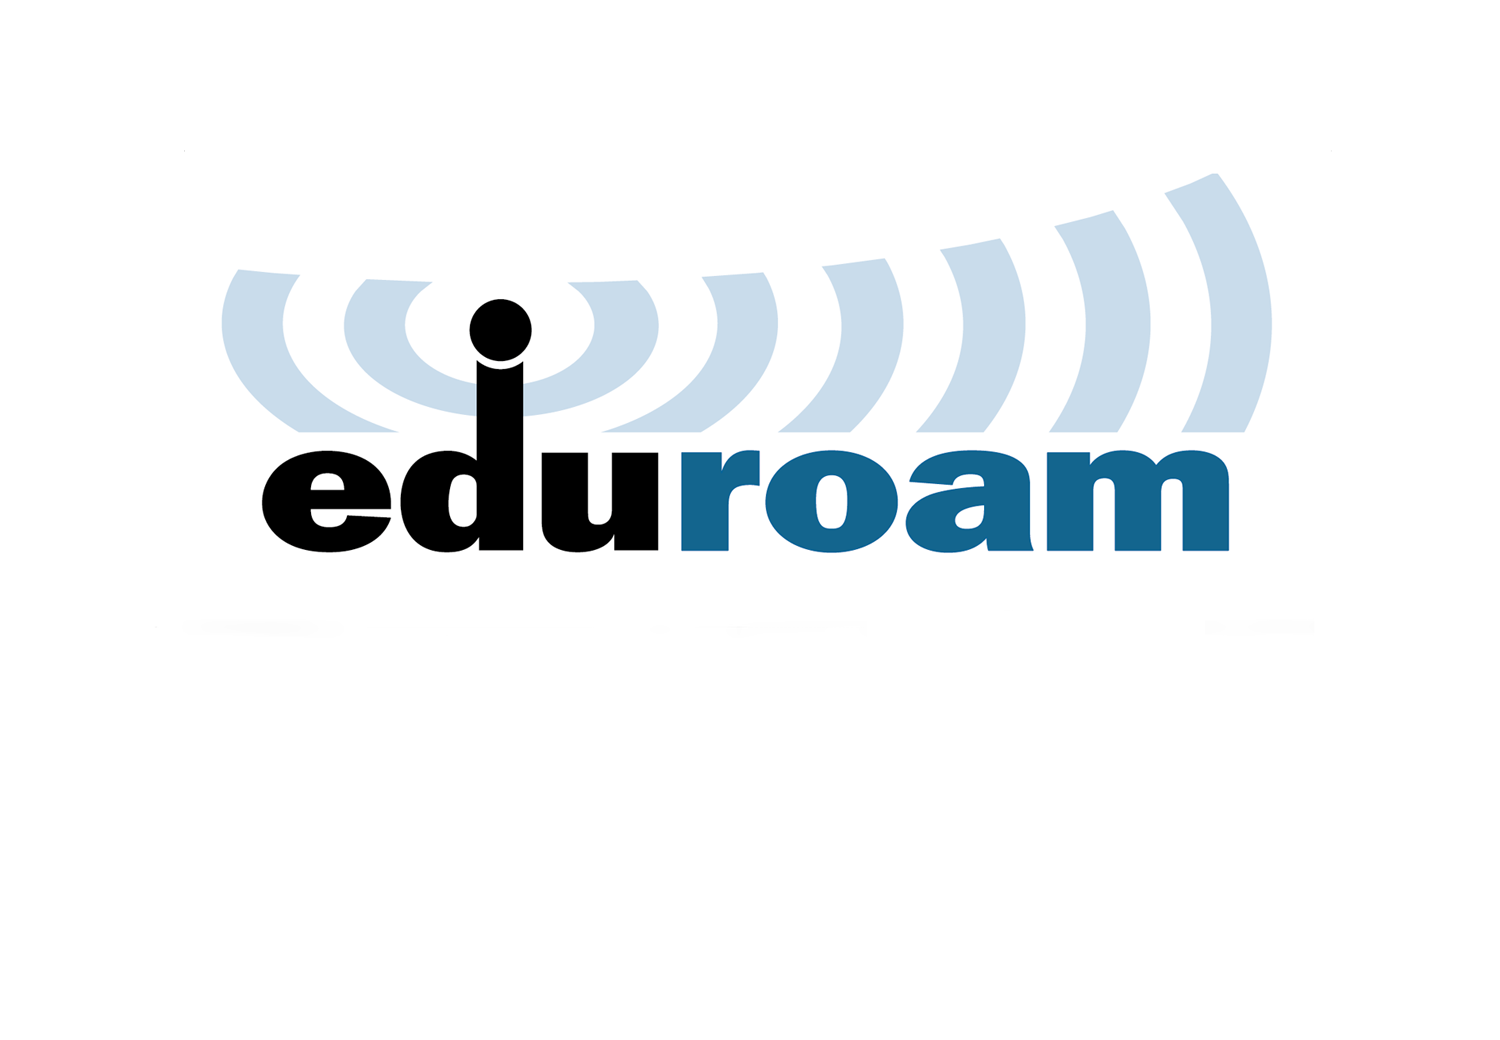 Come configurare eduroam su un dispositivo mobile Android 1